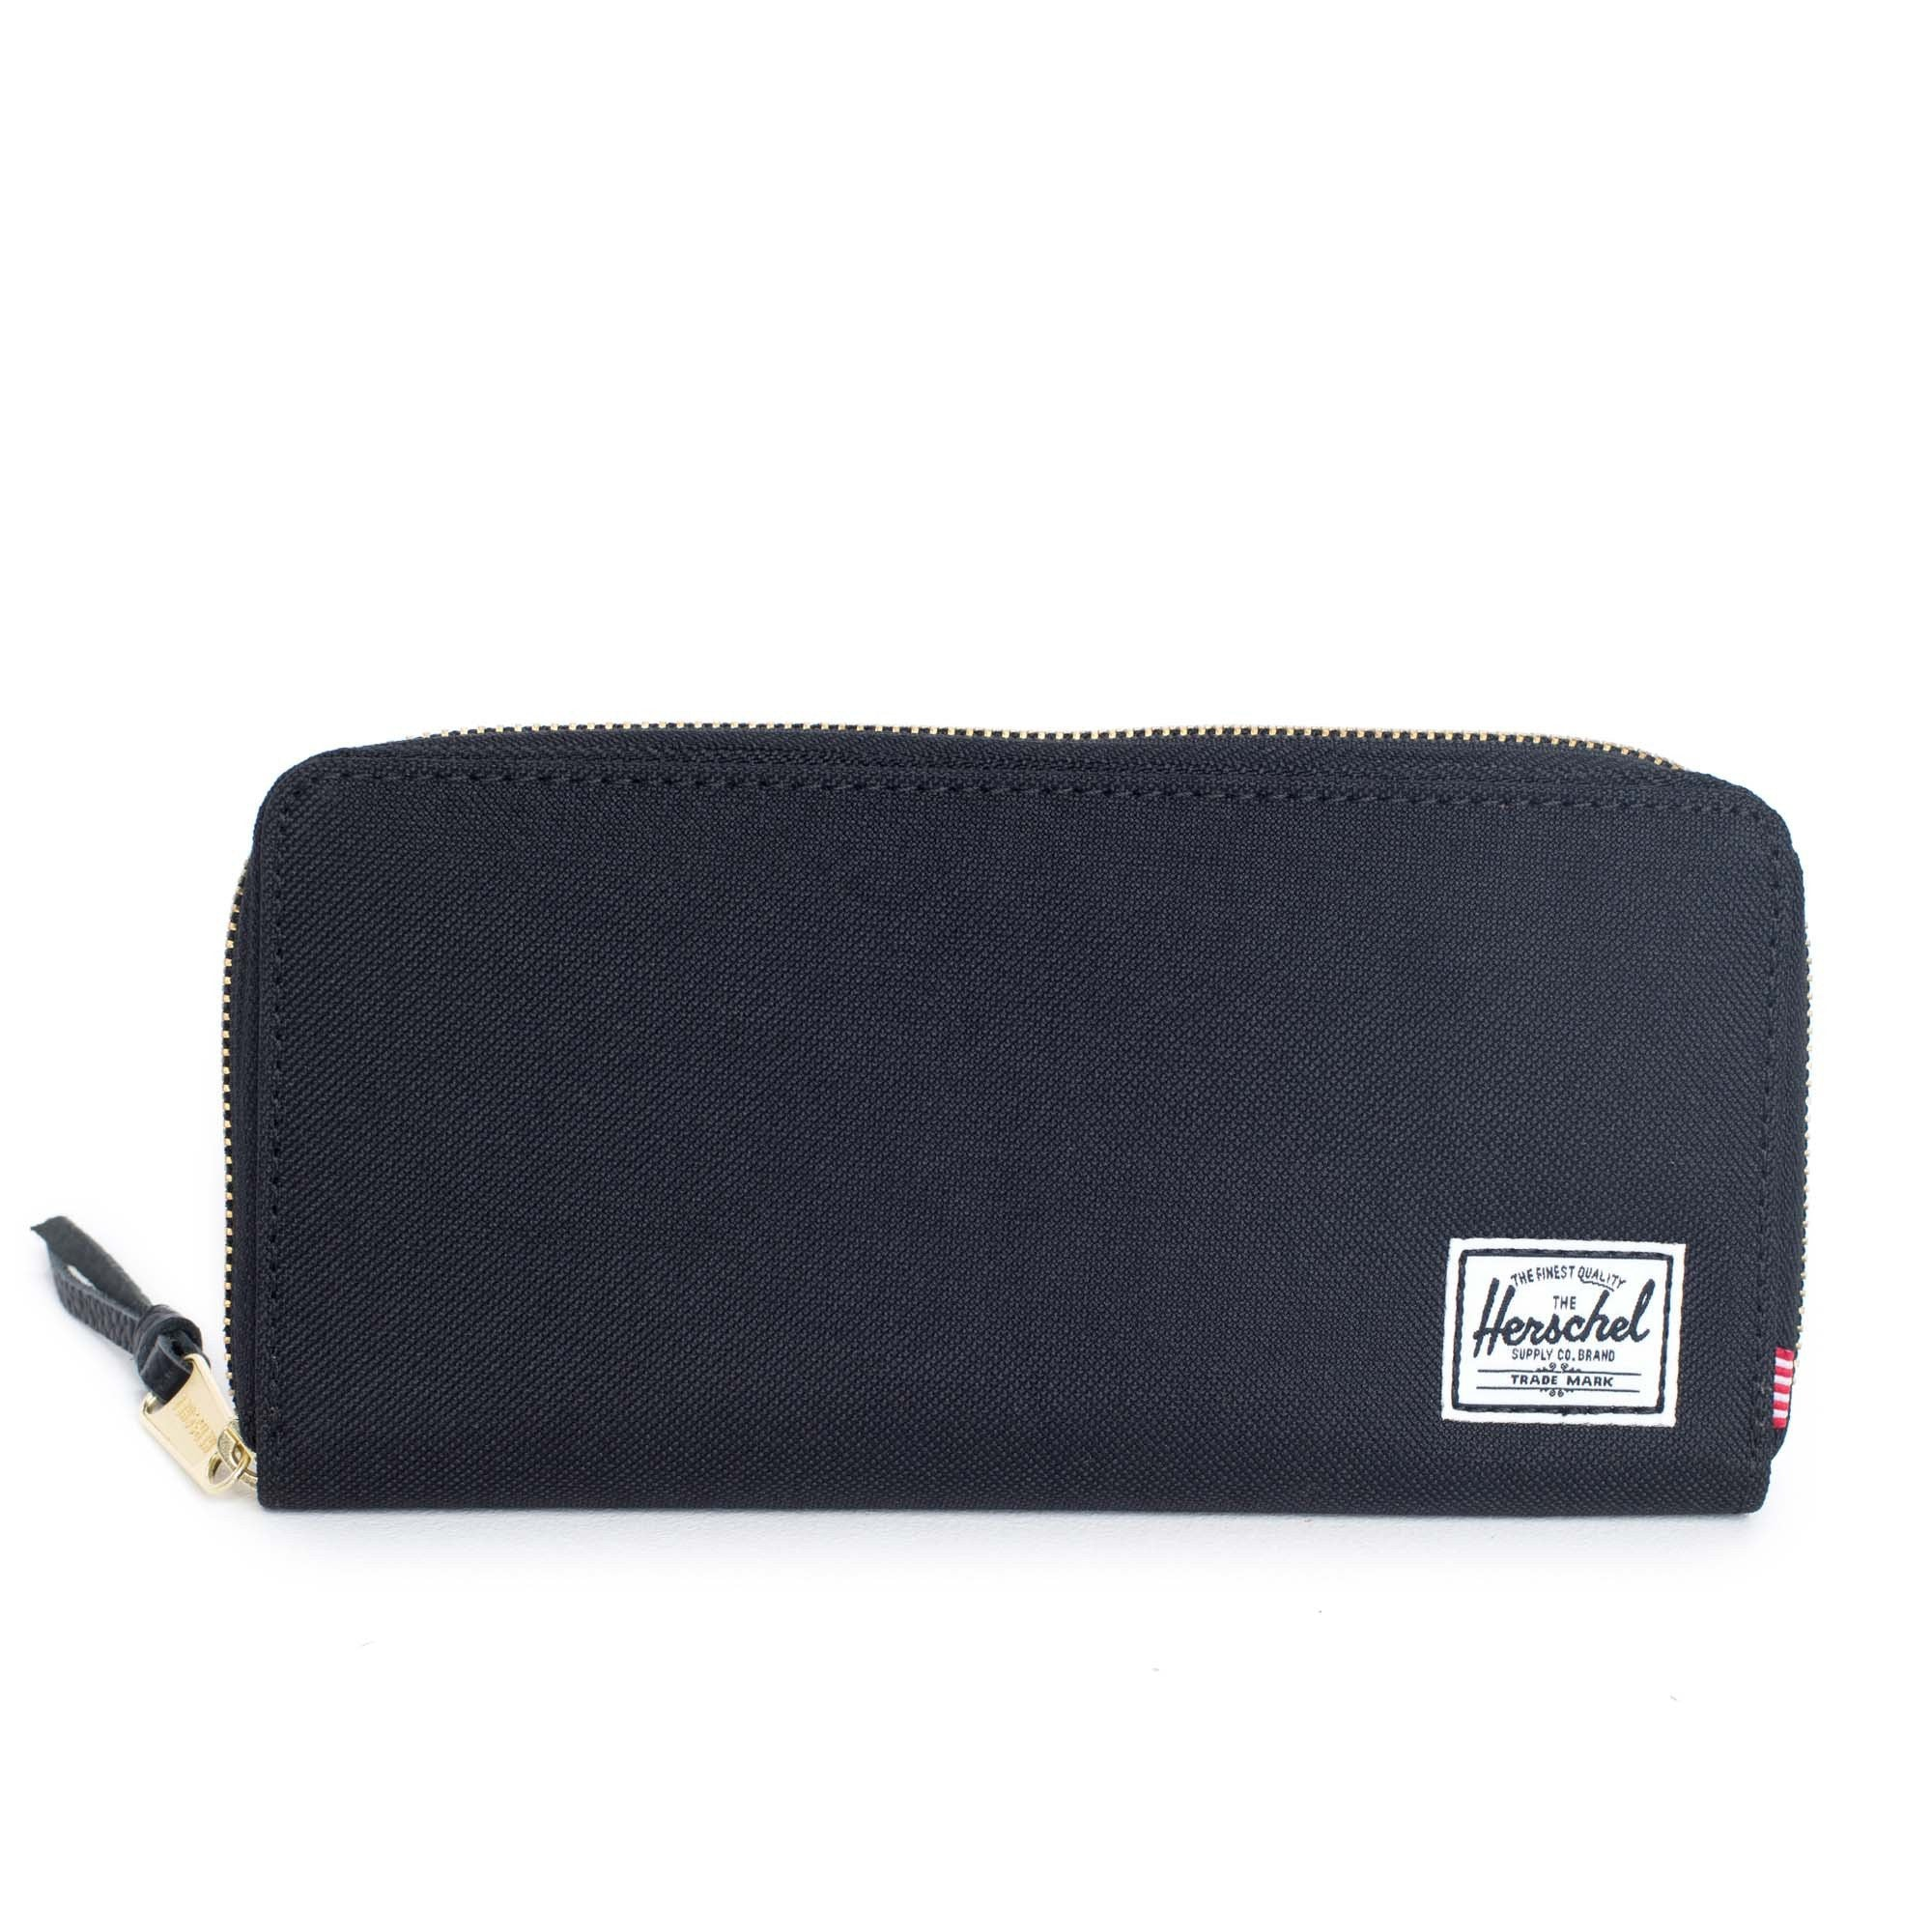 Herschel Avenue Wallet Black